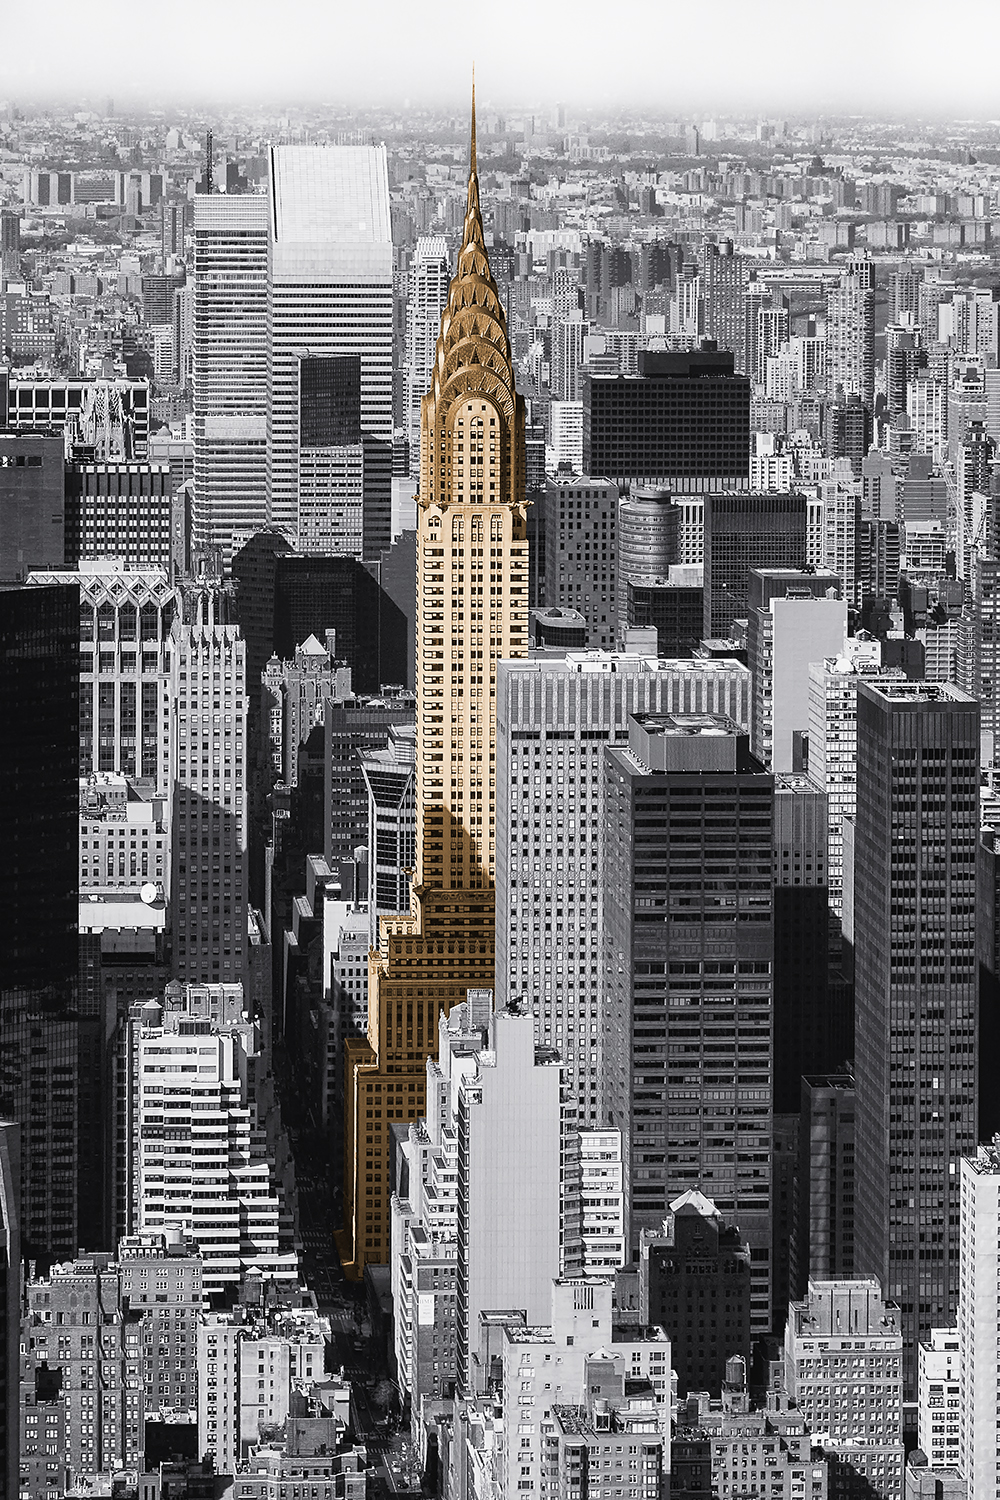 Image Title:  Chrysler Building - Aerial   Mat Sizes:  8x10, 11x14, 16x20   Float Mount Sizes:  12x18, 16x24, 20x30, 24x36, 28x42, 32x48, 36x54, 40x60